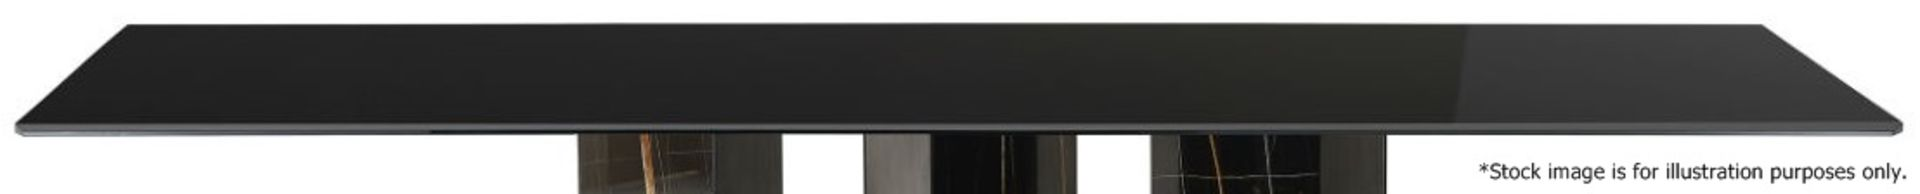 1 x GALLOTTI & RADICE 'Platinum' Italian Made Tinted Glass Table Top *No Base* - Dimensions: To - Image 3 of 3